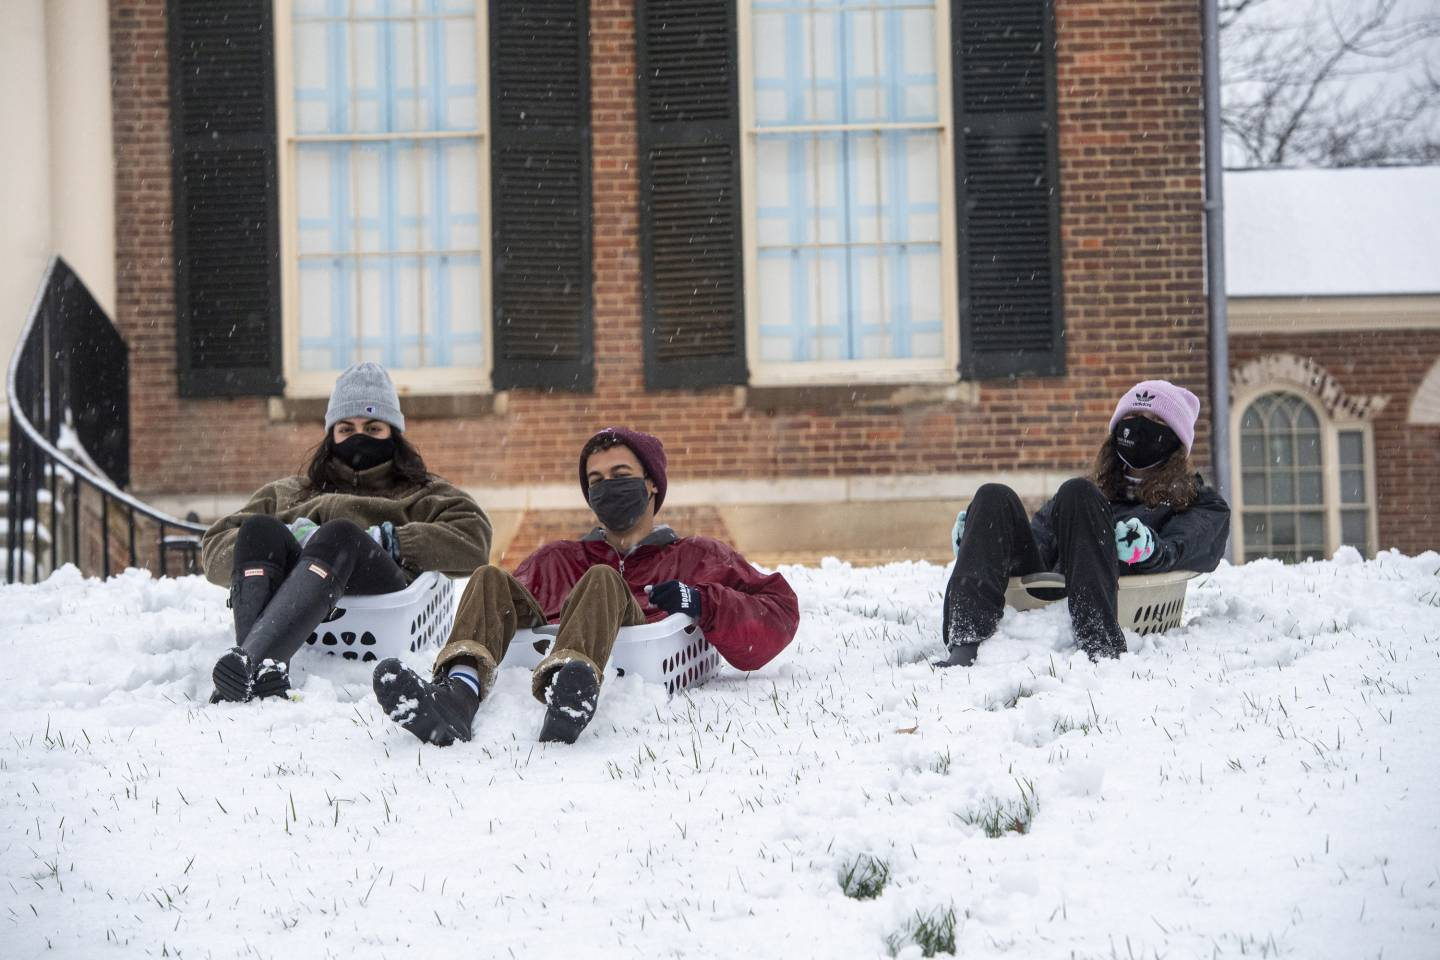 Three masked students sit in laundry baskets in the snow